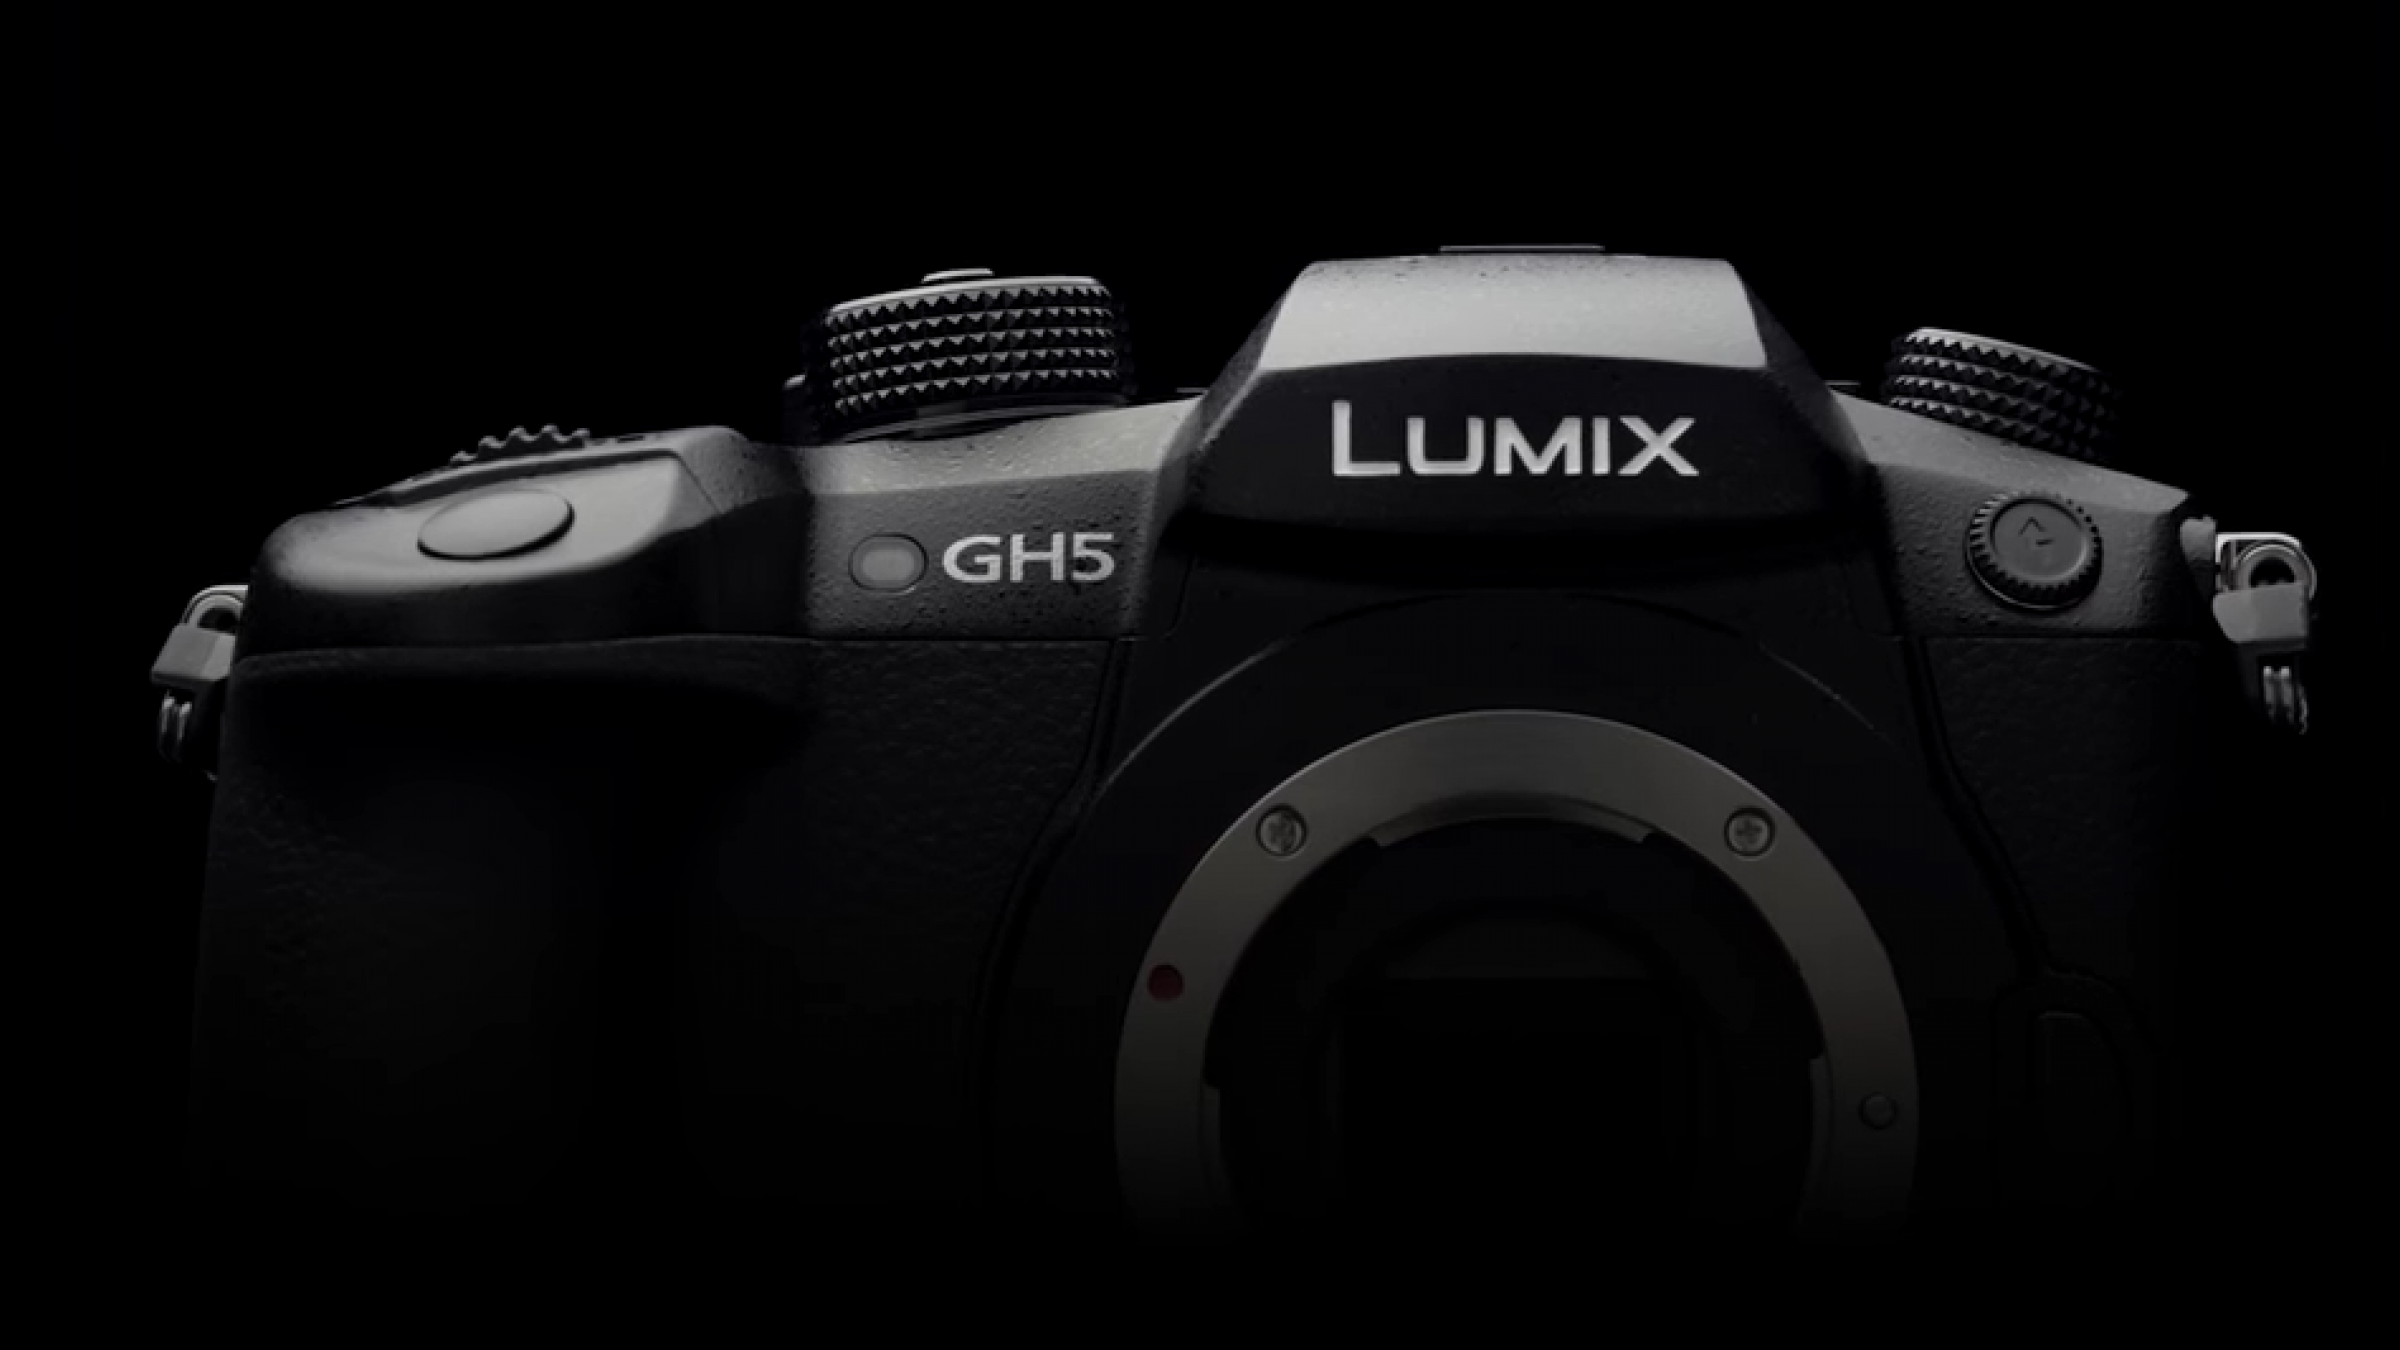 Adobe Premiere Pro Update Adds GH5 10-bit Support